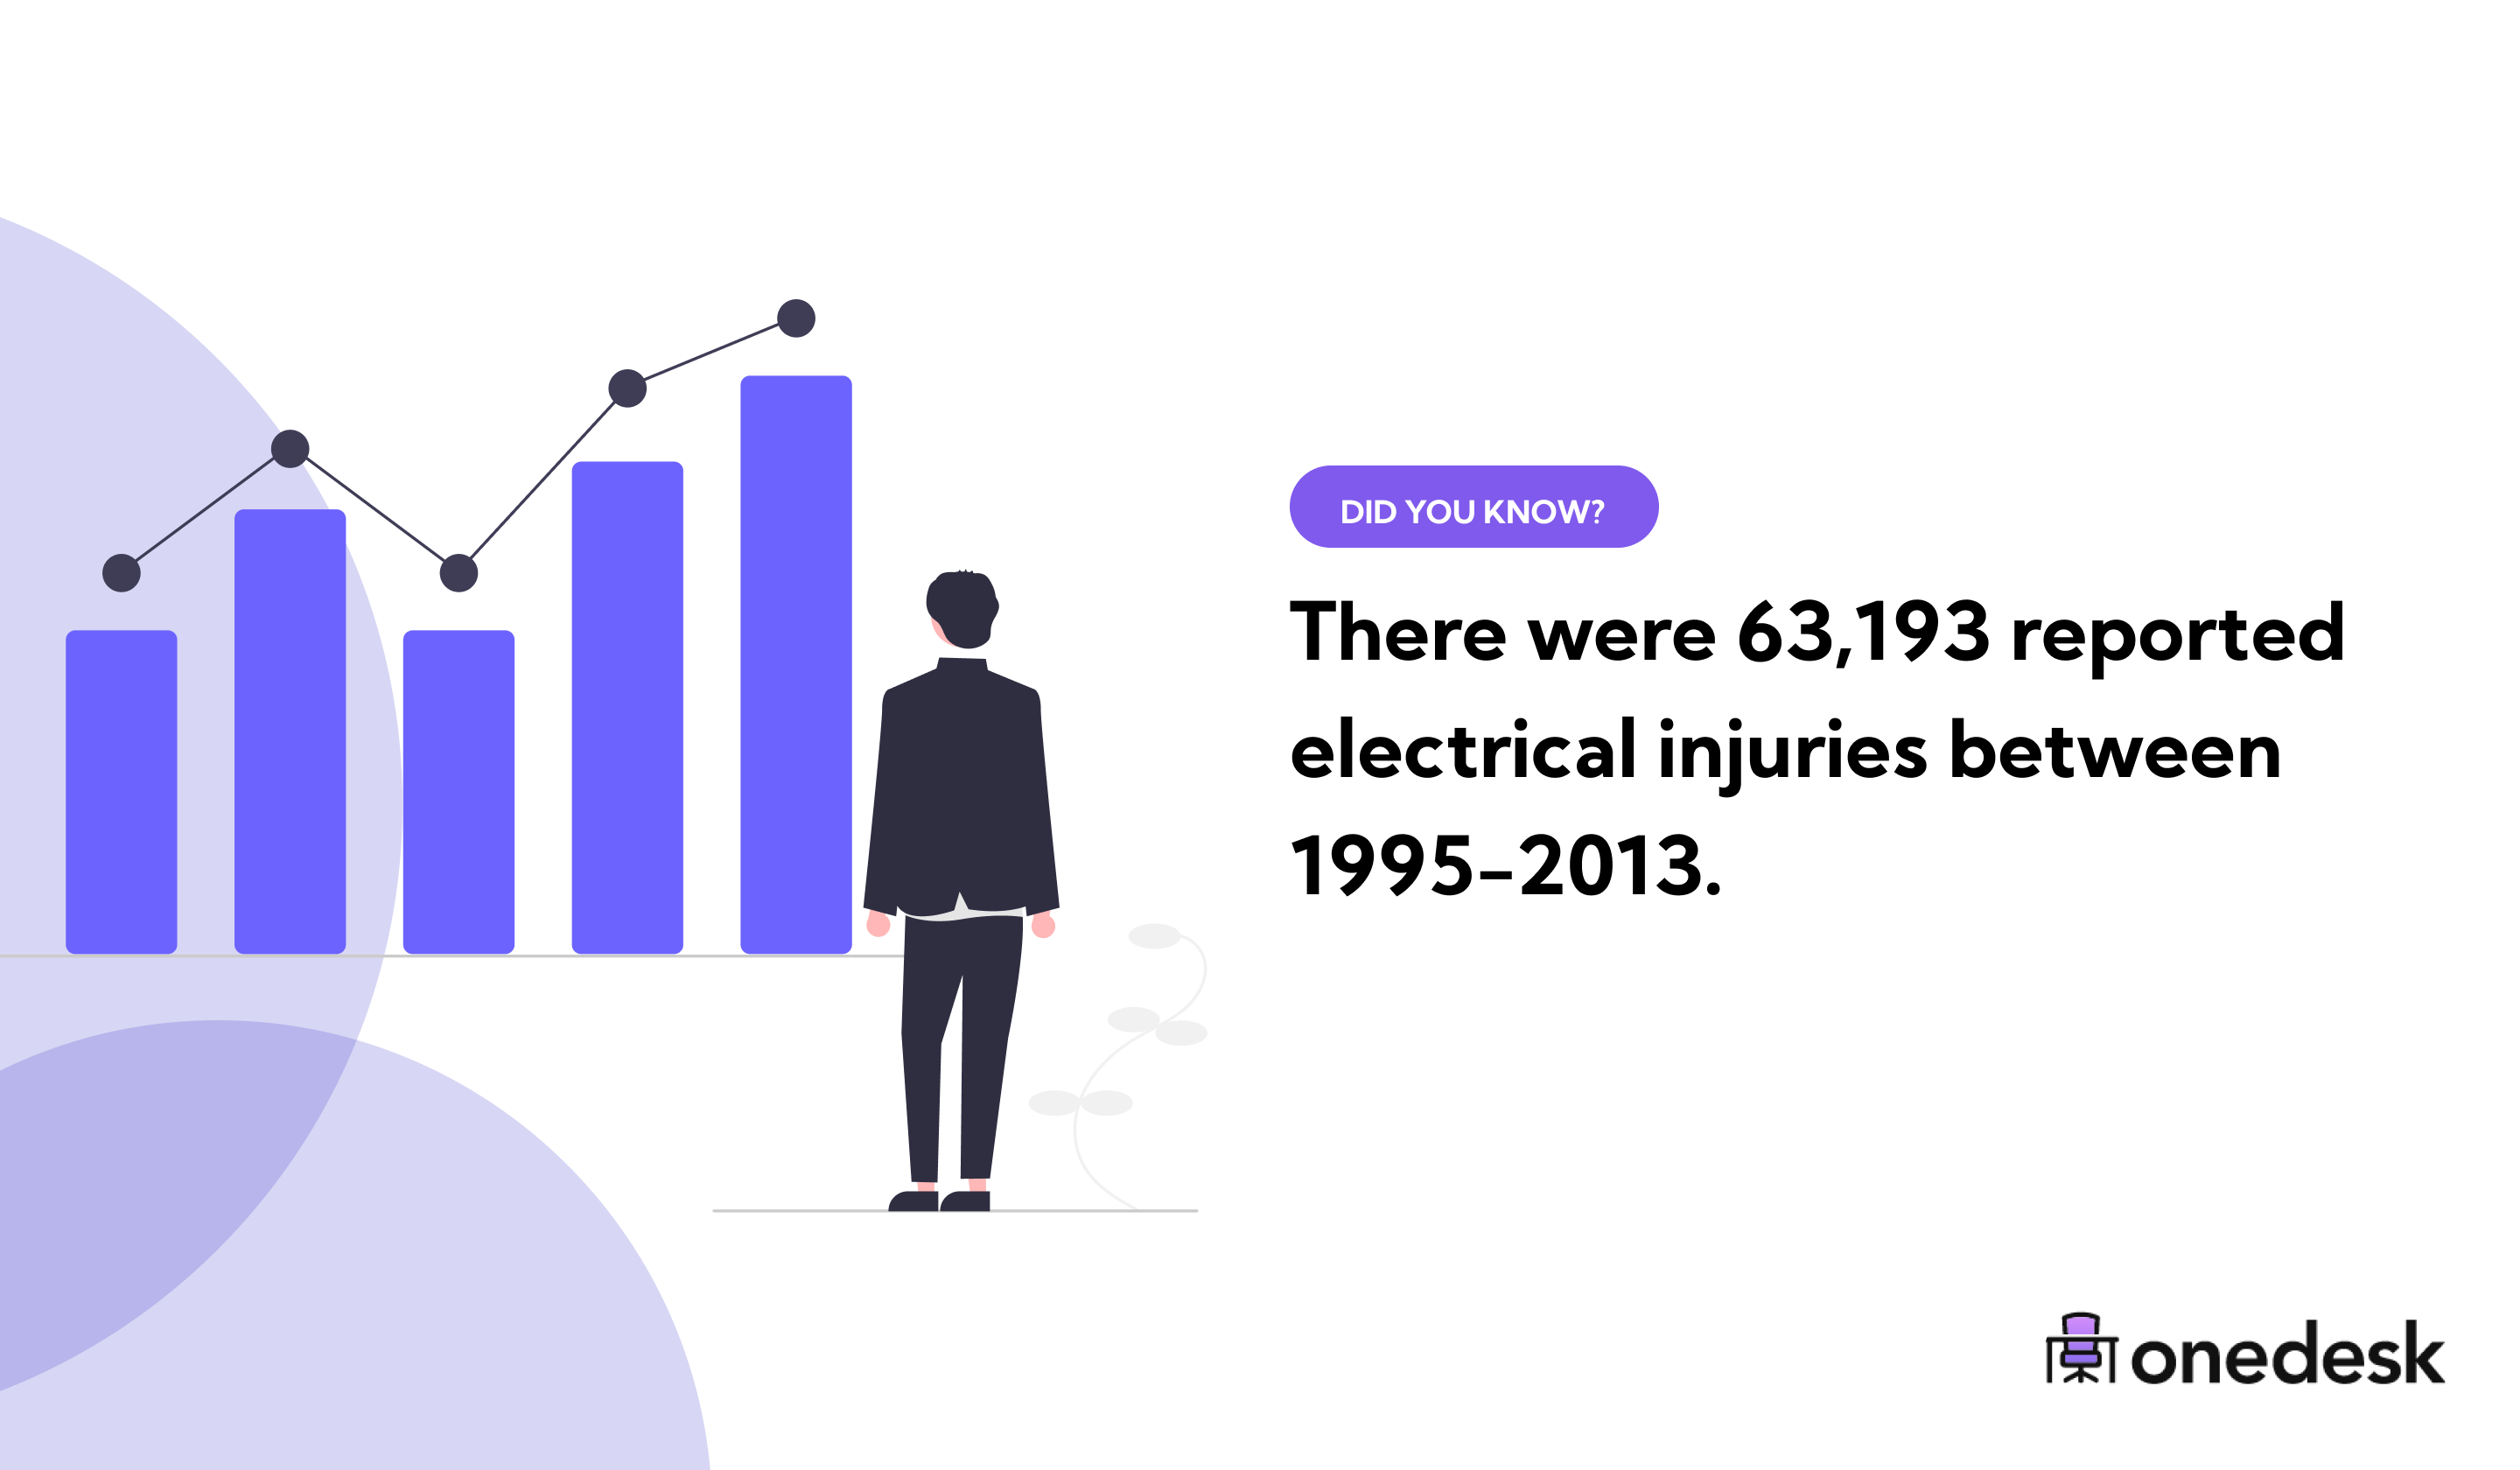 reported electrical injuries between 1995-2013